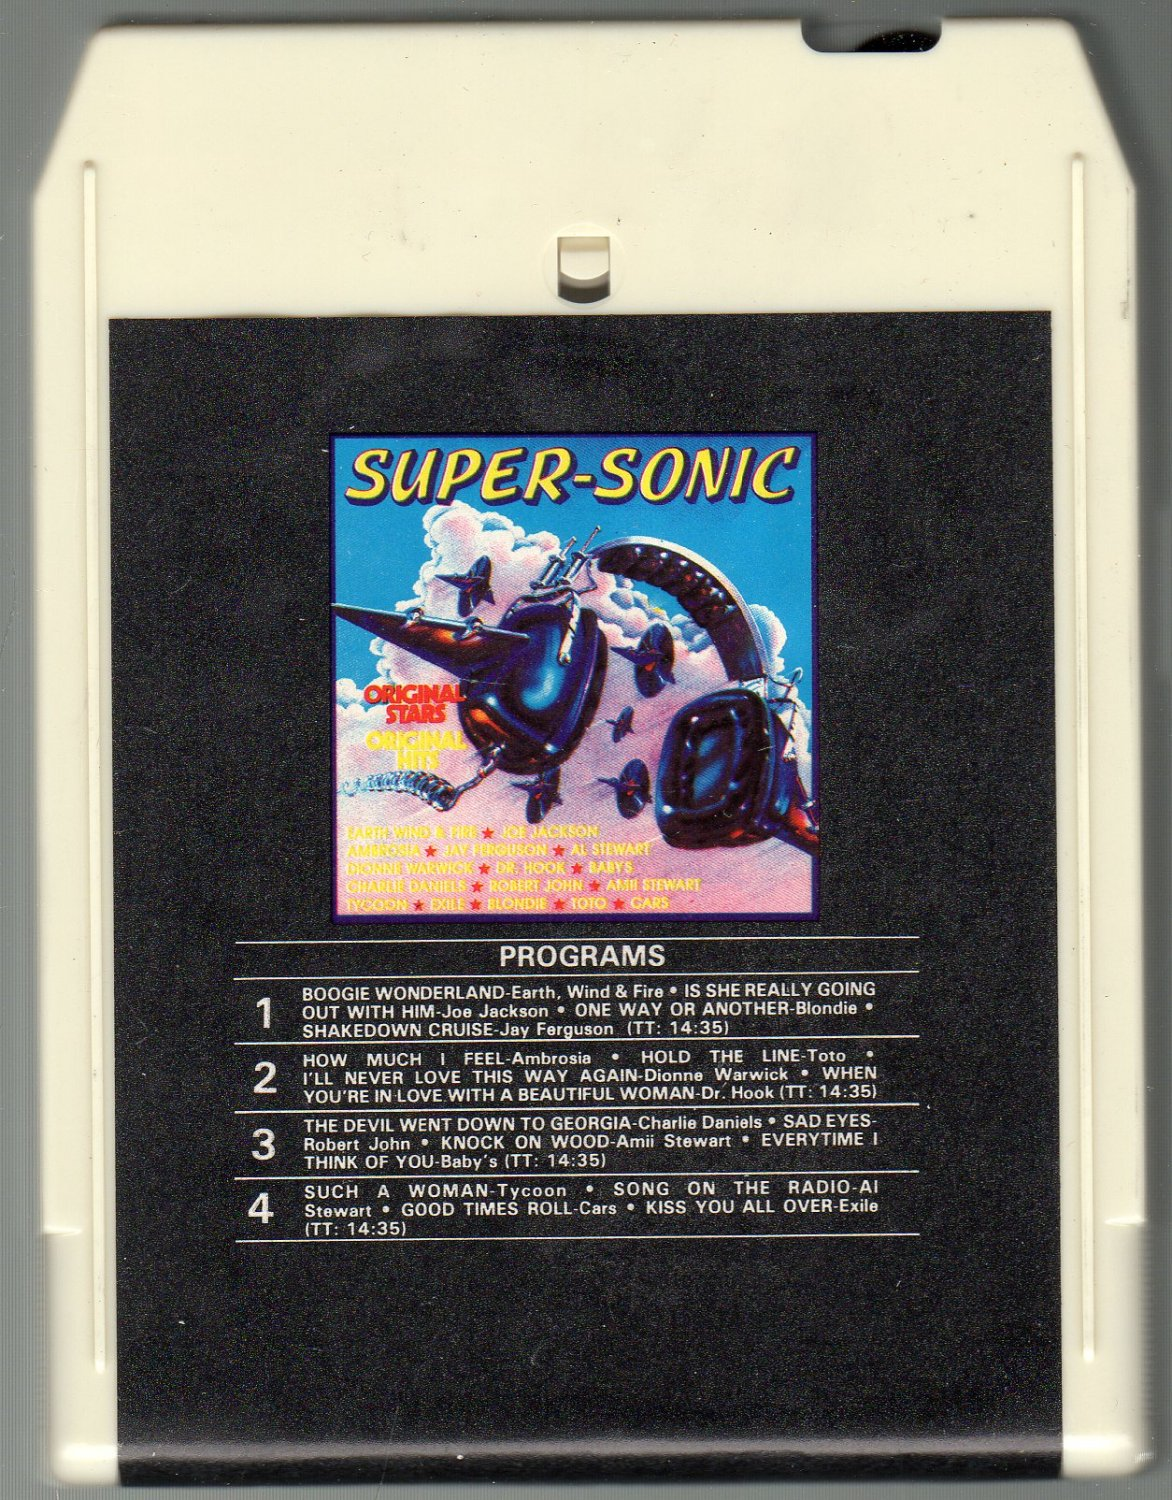 Supersonic - Original Artists RONCO SOLD 8-track tape